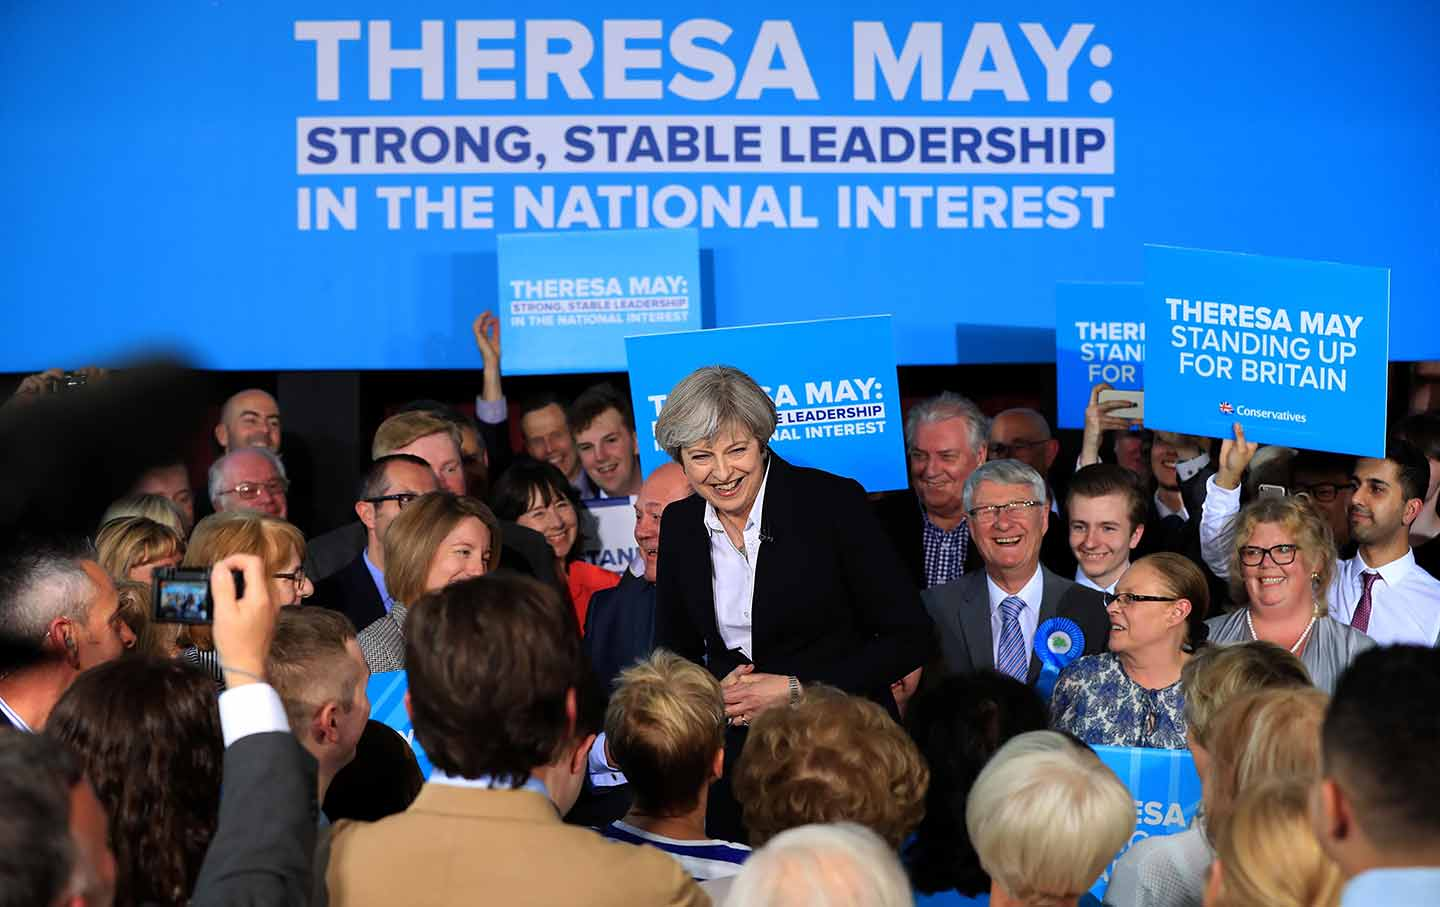 Theresa May campaigning in Lancashire on May 1, 2017. (Peter Byrne / Press Association via AP Images)